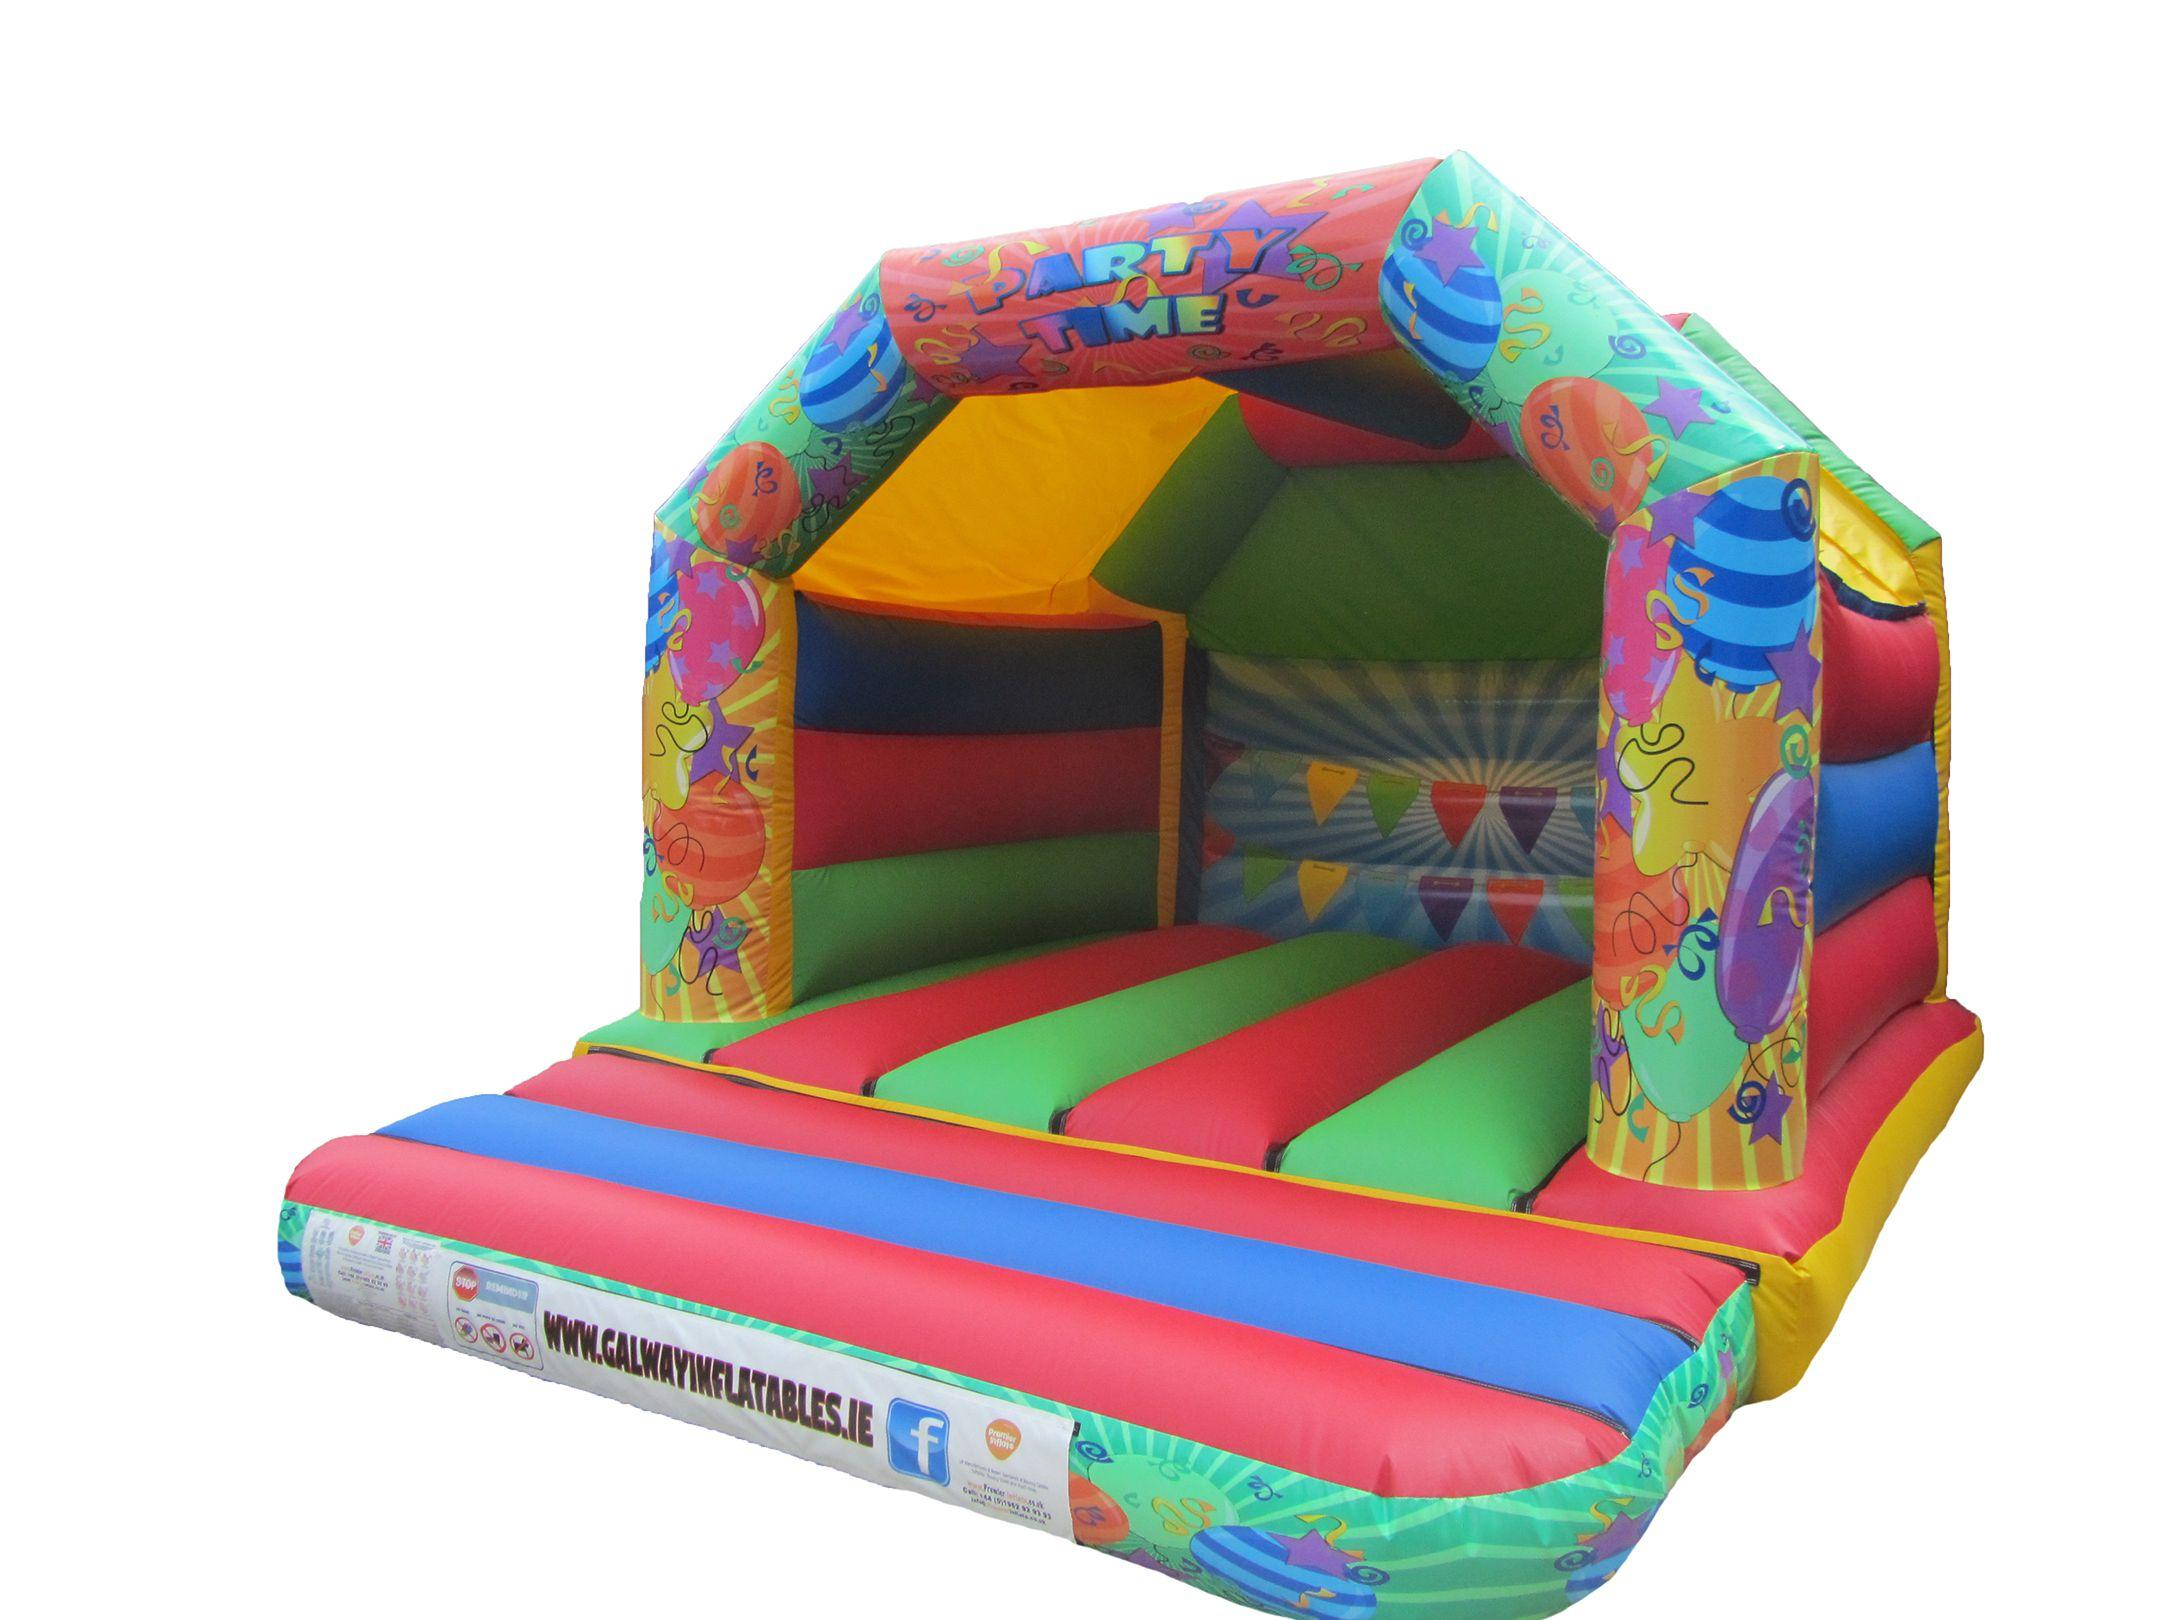 Unisex Party Themed Bouncy Castle